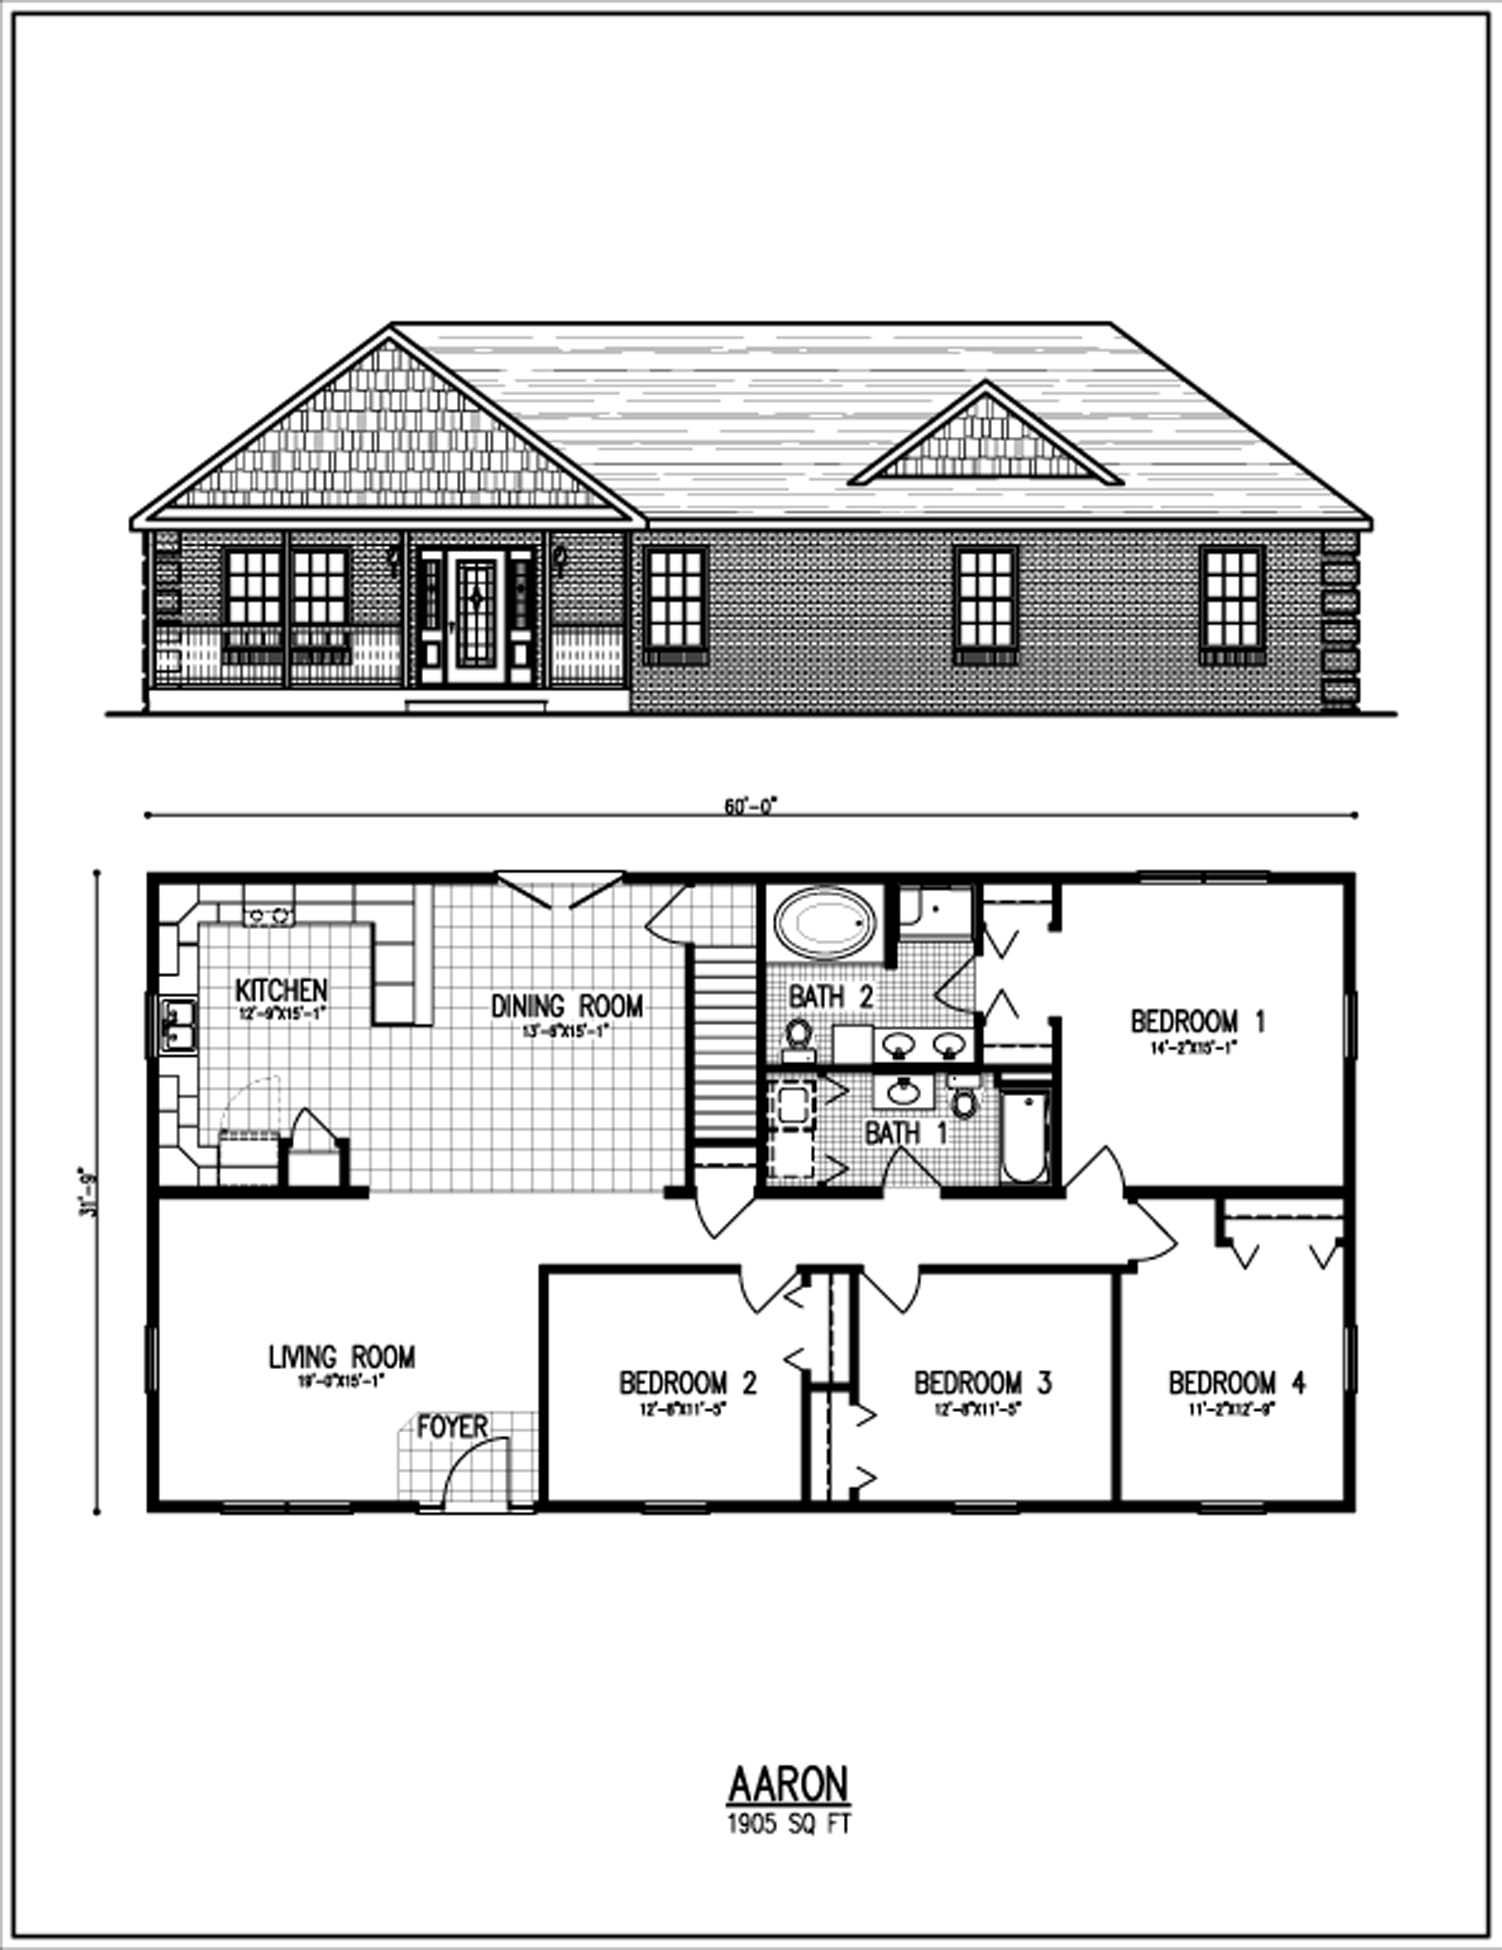 ranch floor plans - Ranch Floor Plans